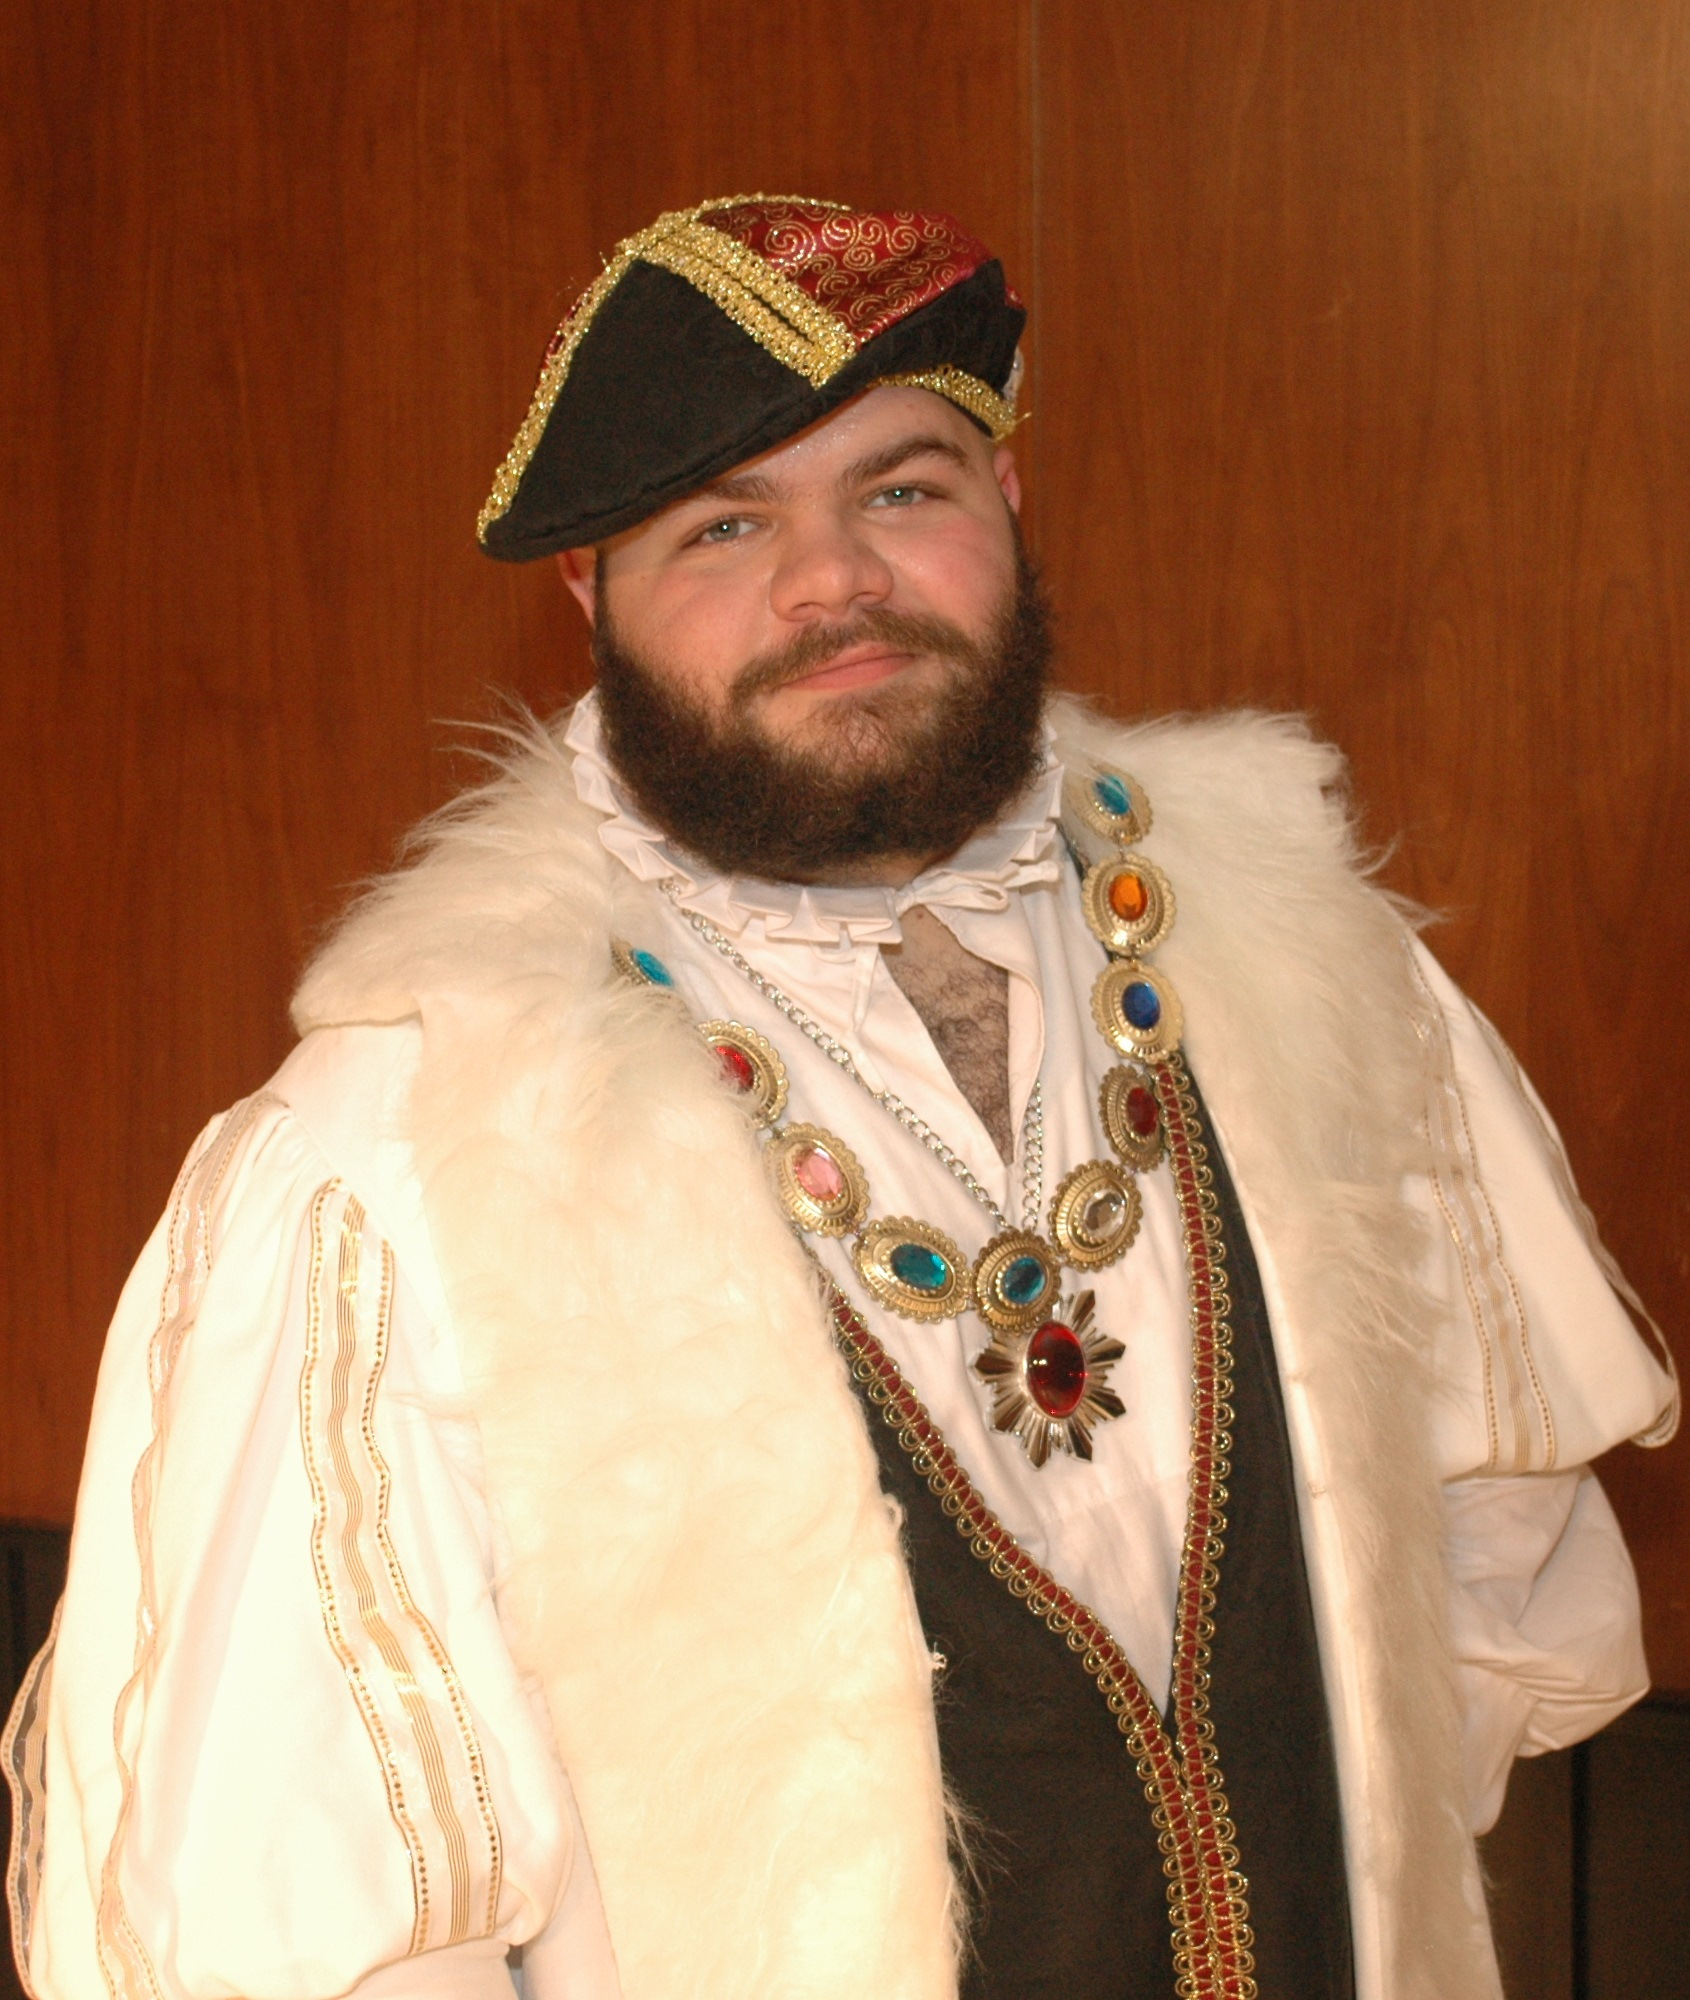 John Phillians as King Henry VIII